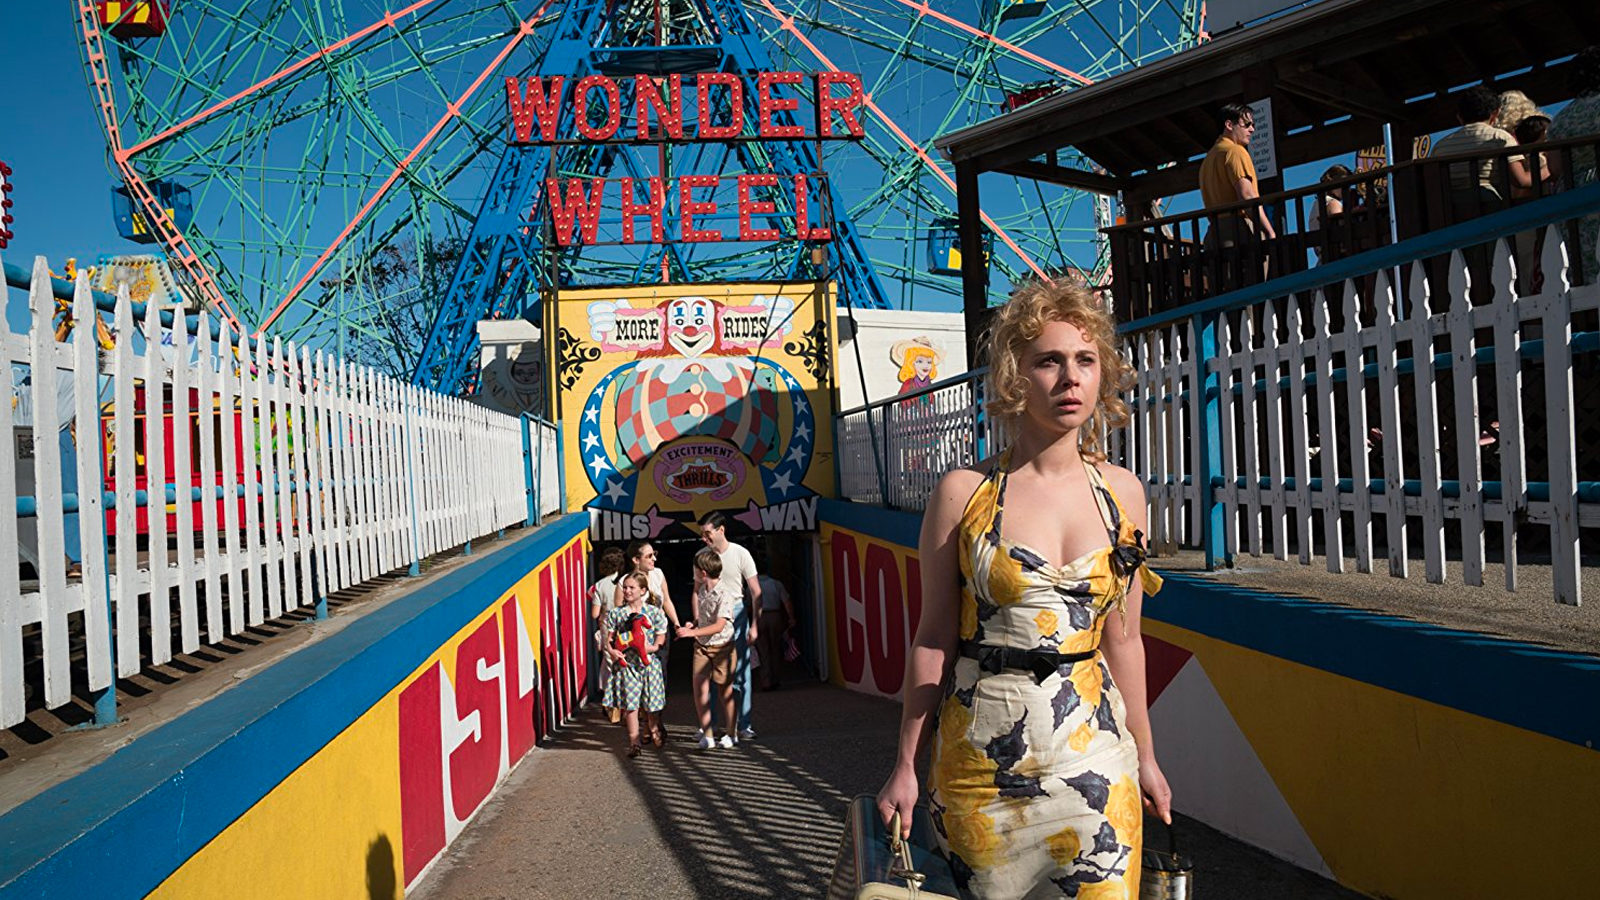 Wonder Wheel – Beautiful, but does that make it shallow?